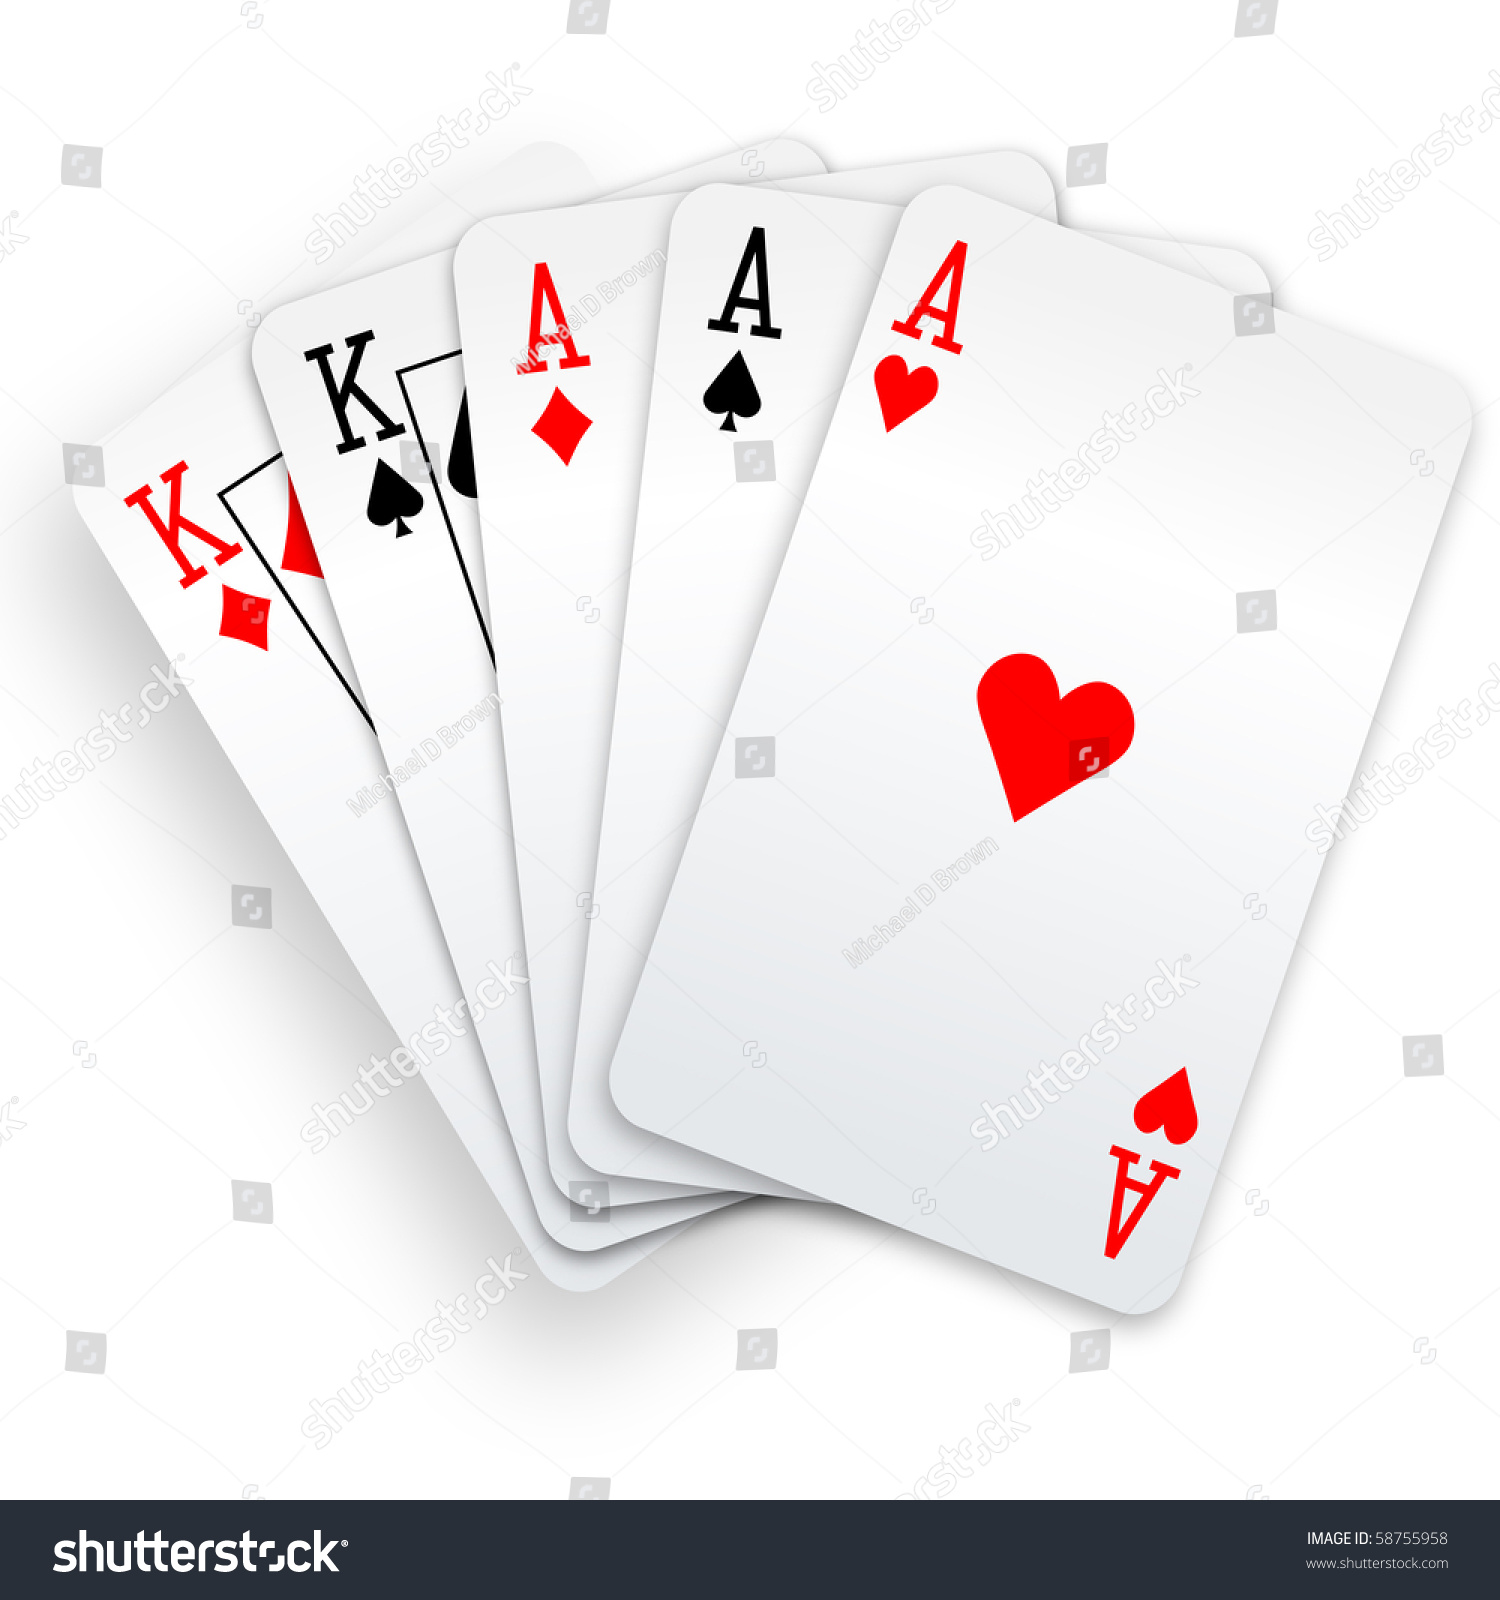 Royalty-free A Poker Hand Full House three Aces and… #58755958 Stock ...